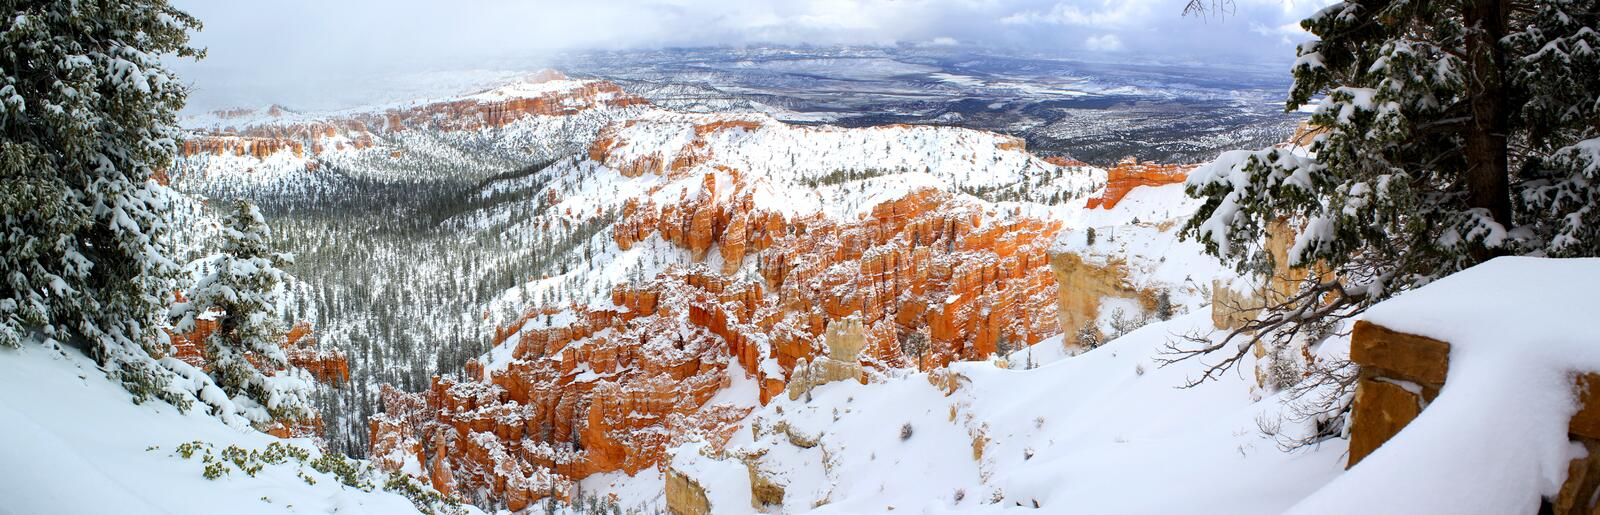 Prachtig Panorama: Buitengewone mening van Bryce Canyon National Park in de Winter/Utah/de V.S. royalty-vrije stock foto